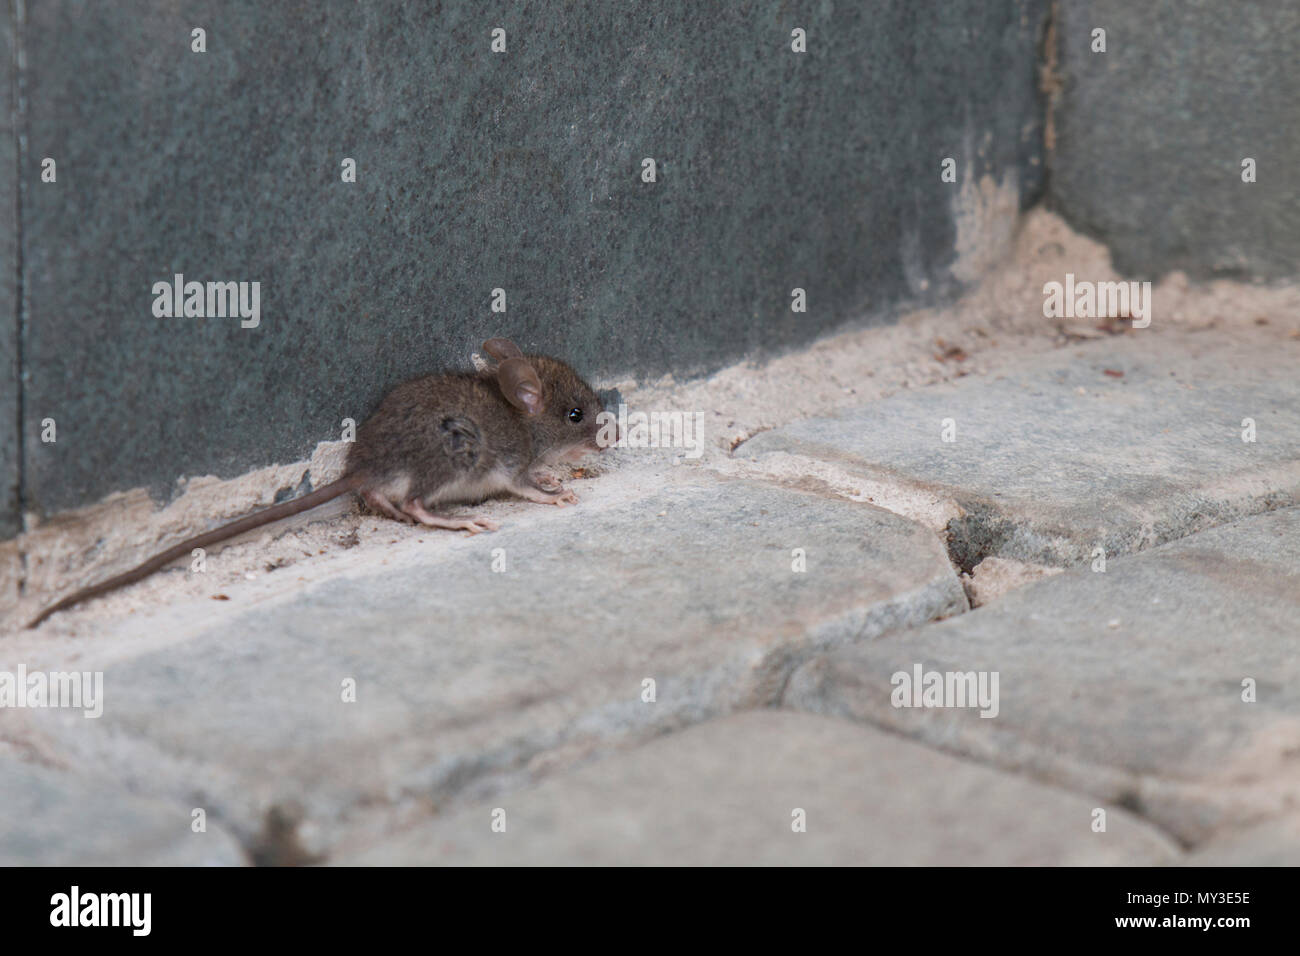 Small Mouse standing on paving stone - Stock Image